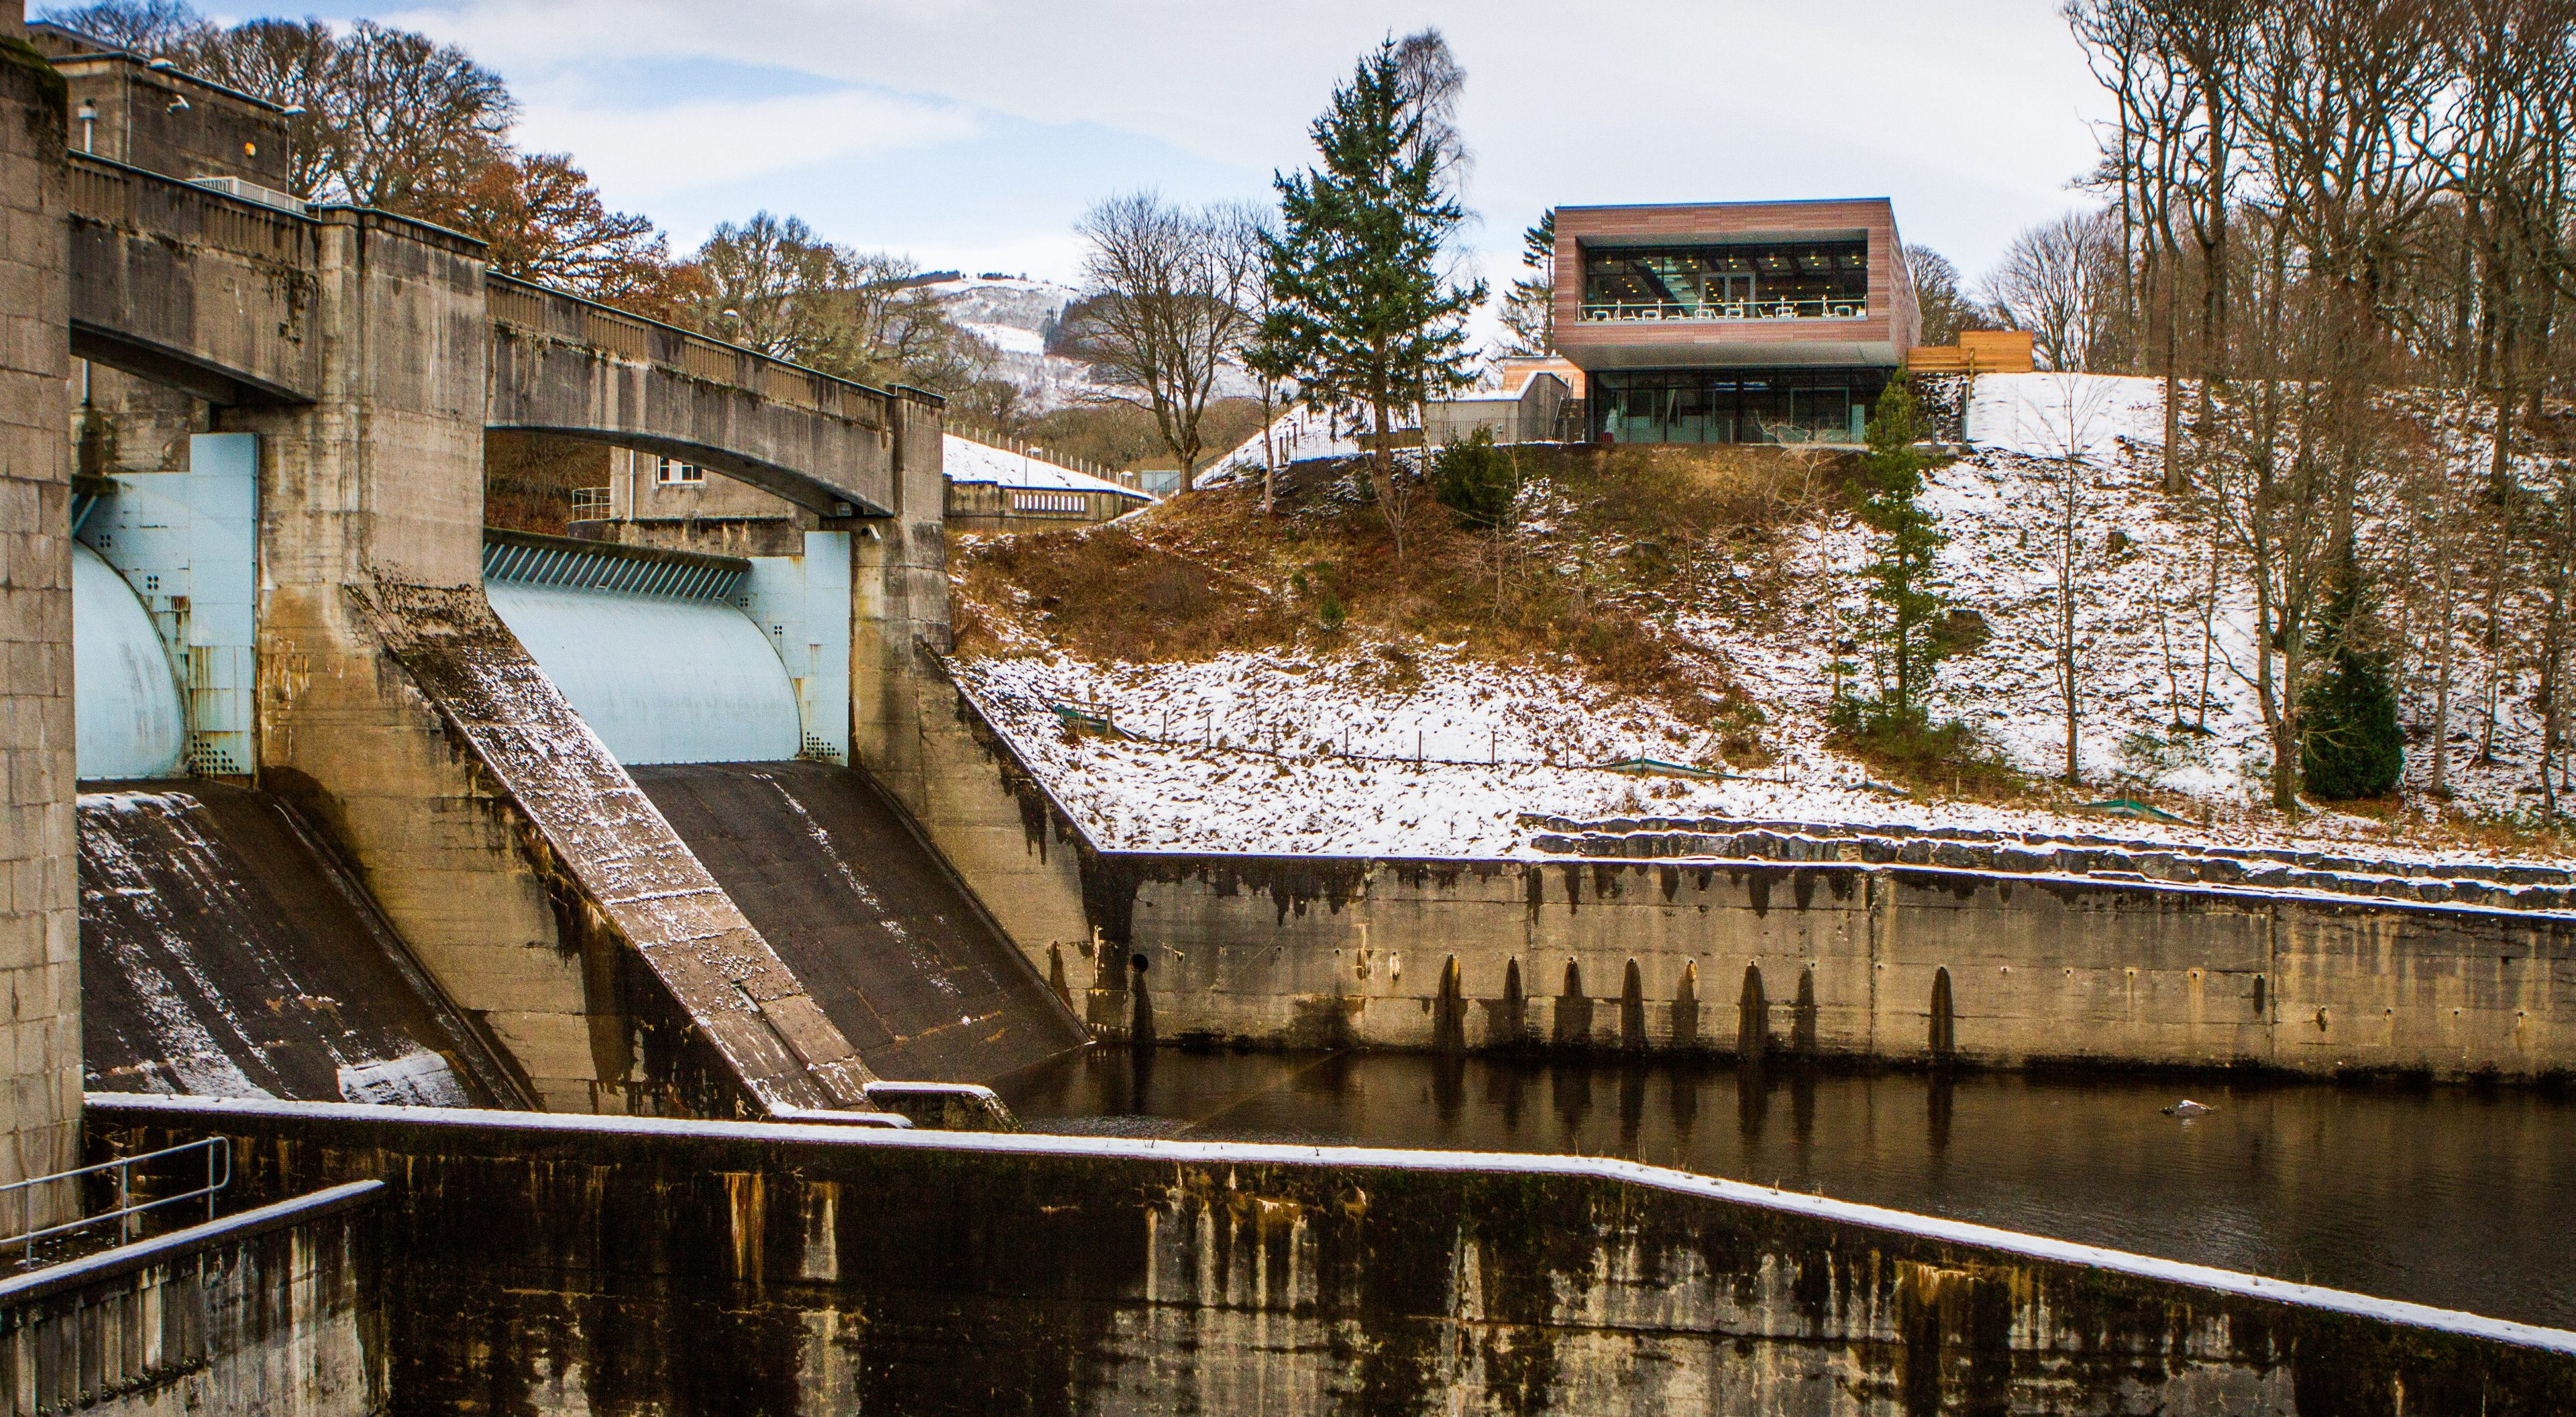 Pitlochry Dam visitor centre.